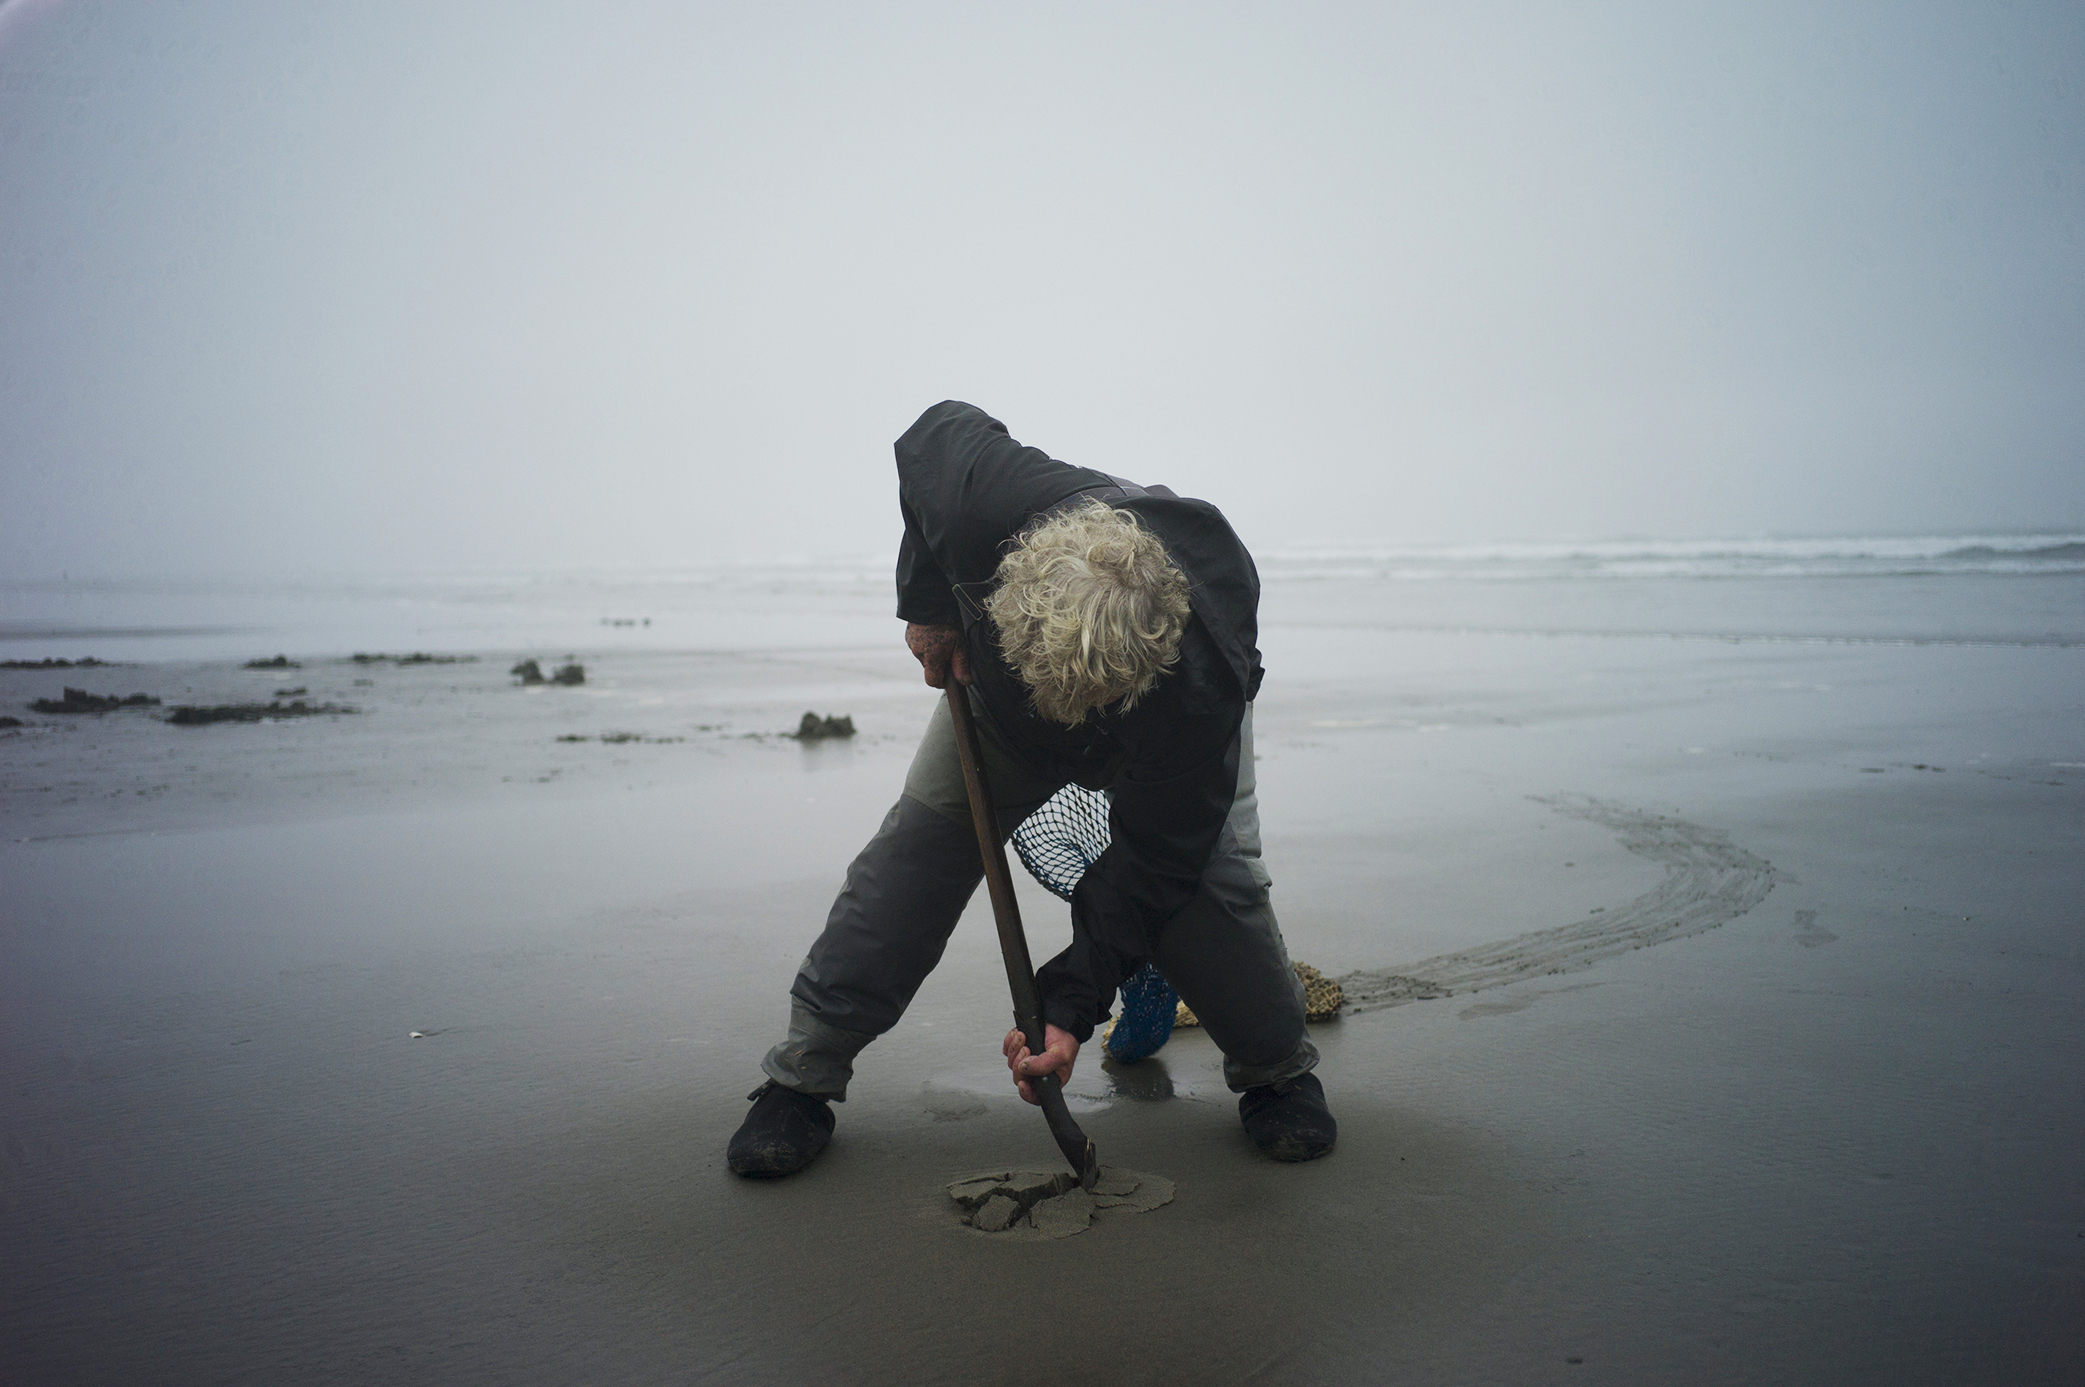 Richard Darbonne captures clam harvester Ron Neva sticking his small shovel deep into the sand for 1859 magazine